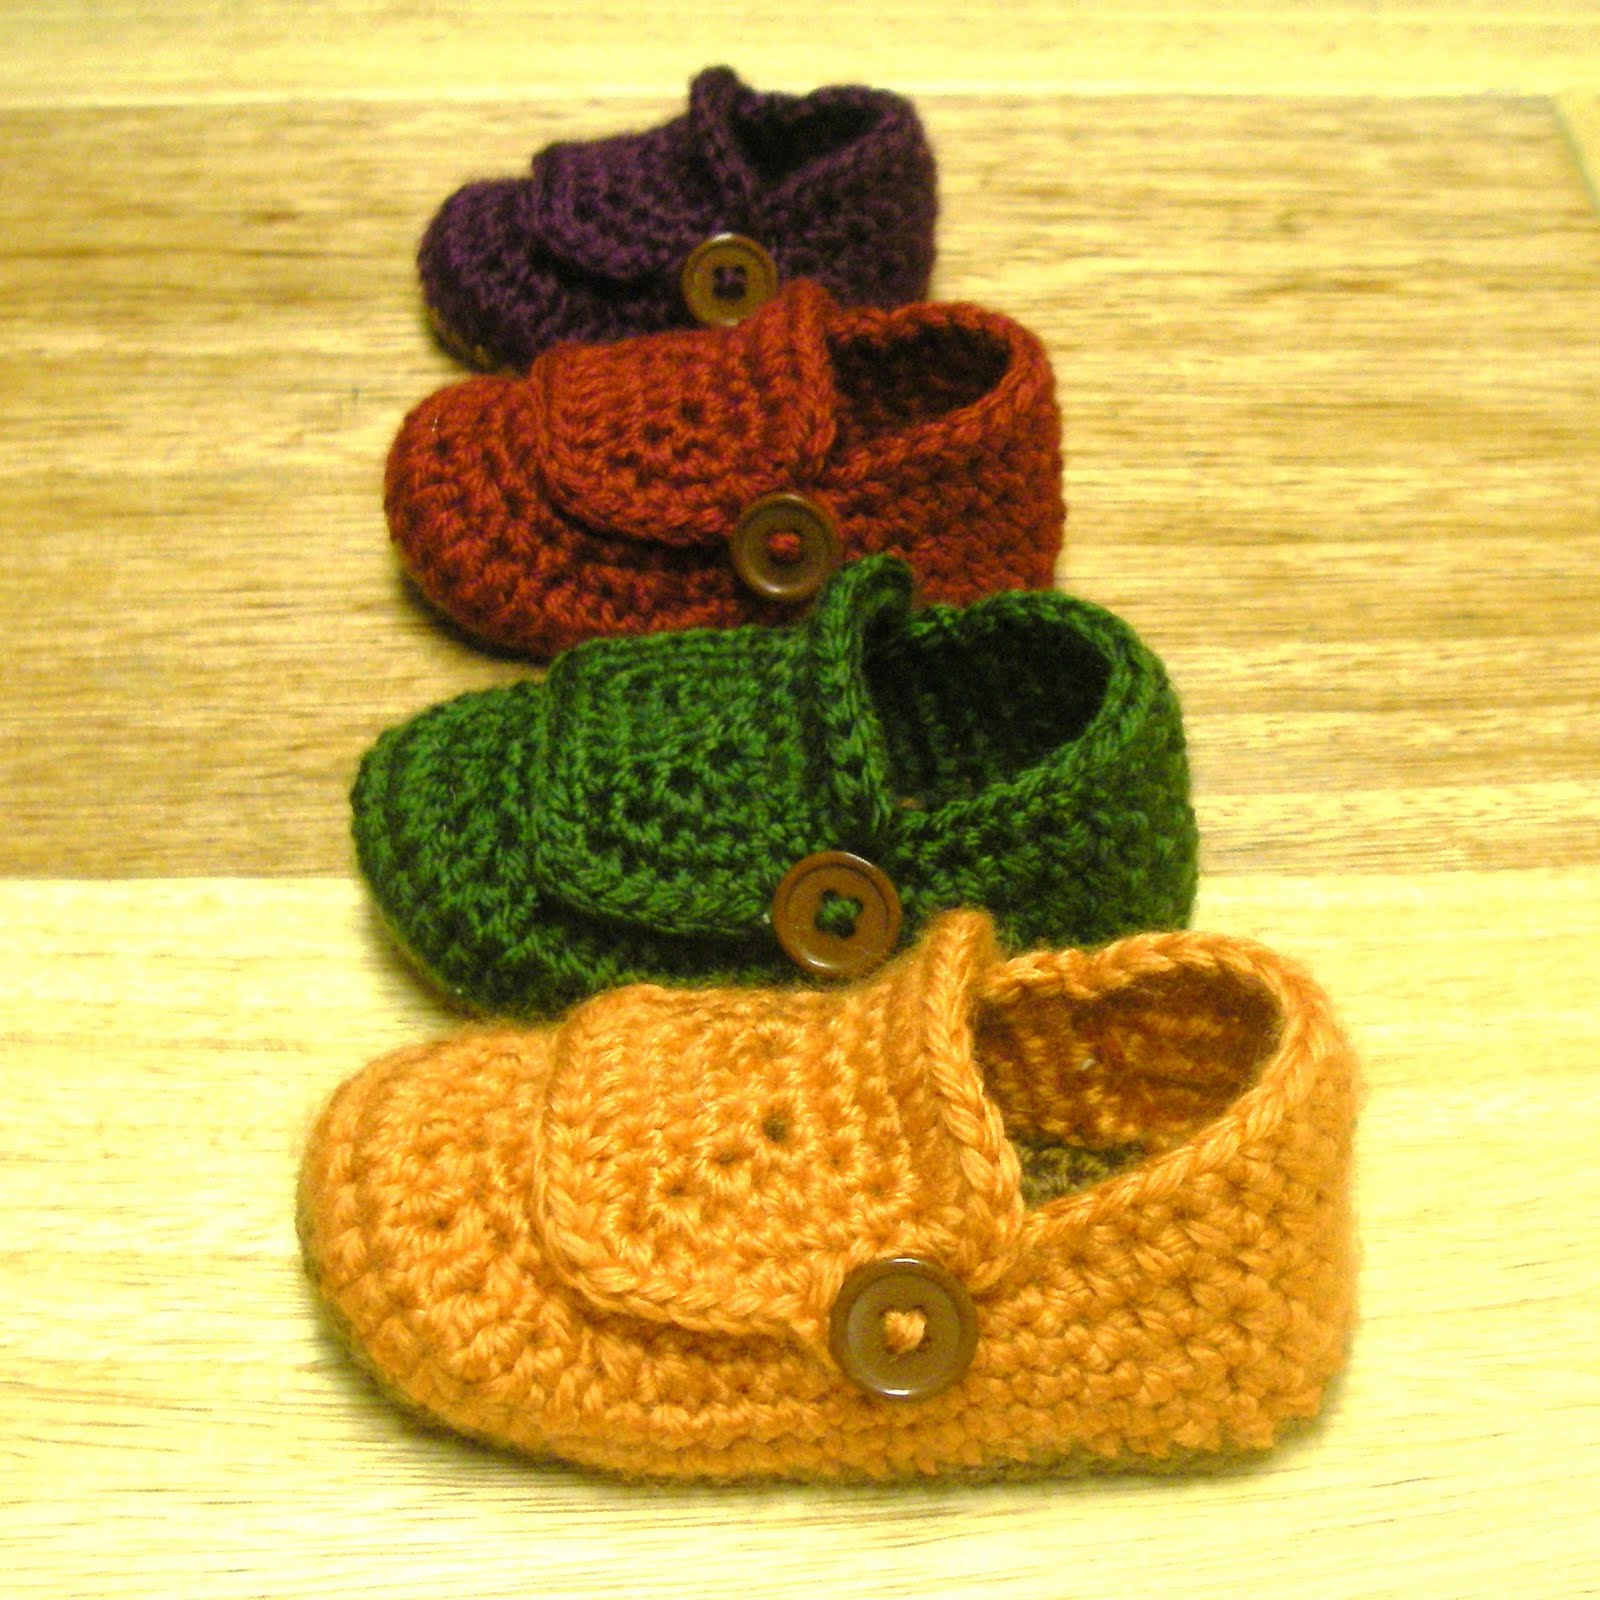 Crochet and Other Stuff: Crochet Mini Booties Souvenir - free pattern